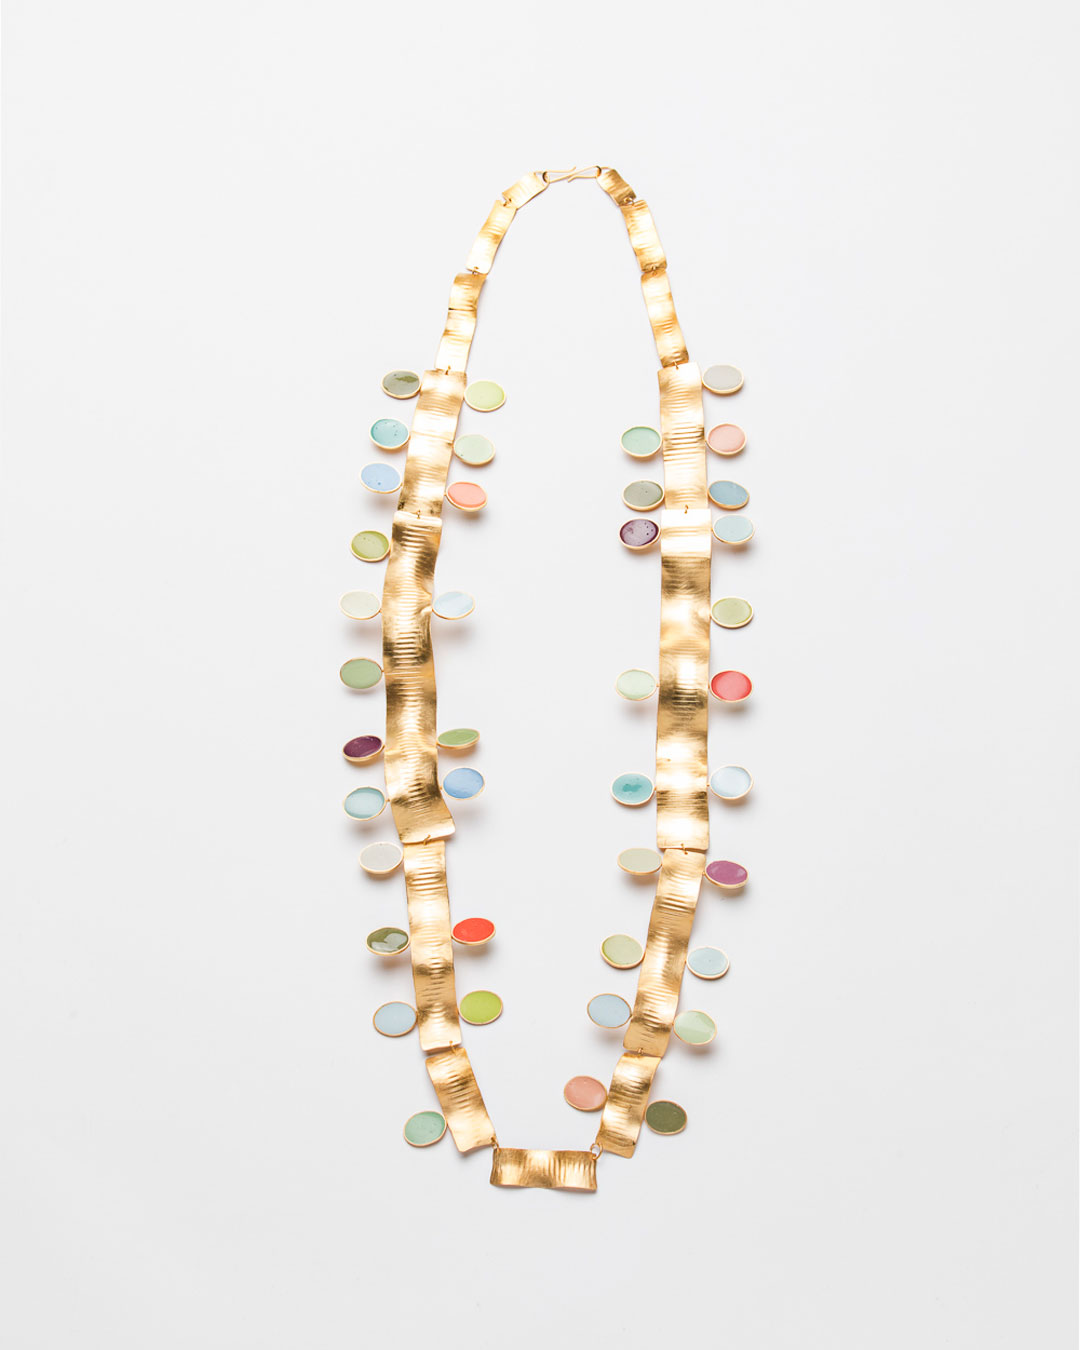 Margit Jäschke, The Golden Thread: 40 Coloured Years, 2019, necklace; gold, gold-plated silver, epoxy, 500 x 160 x 20 mm, €9700